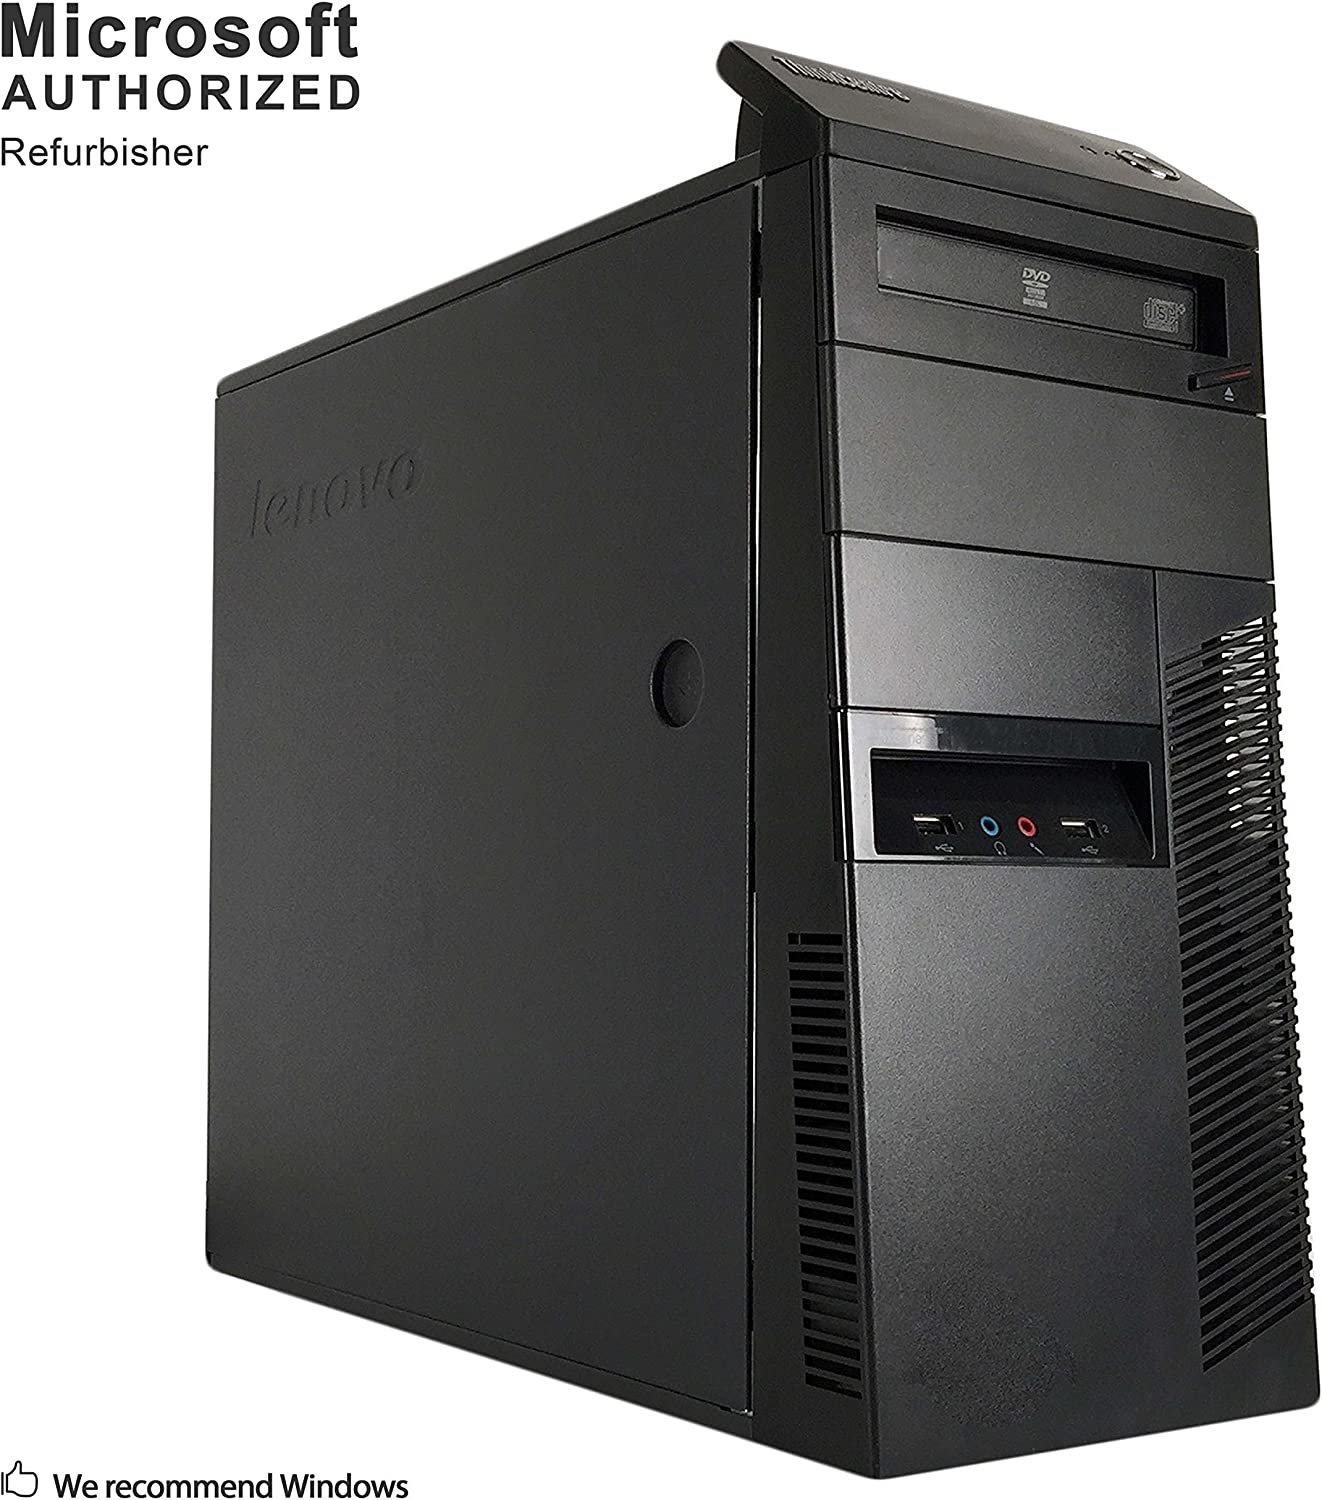 Lenovo ThinkCentre M90p Tower Desktop PC, Intel Core i5-650 up to 3.46GHz, 8G DDR3, 500G, WiFi, BT 4.0, DVD, Windows 10 64 Bit-Multi-Language Supports English/Spanish/French(Renewed)